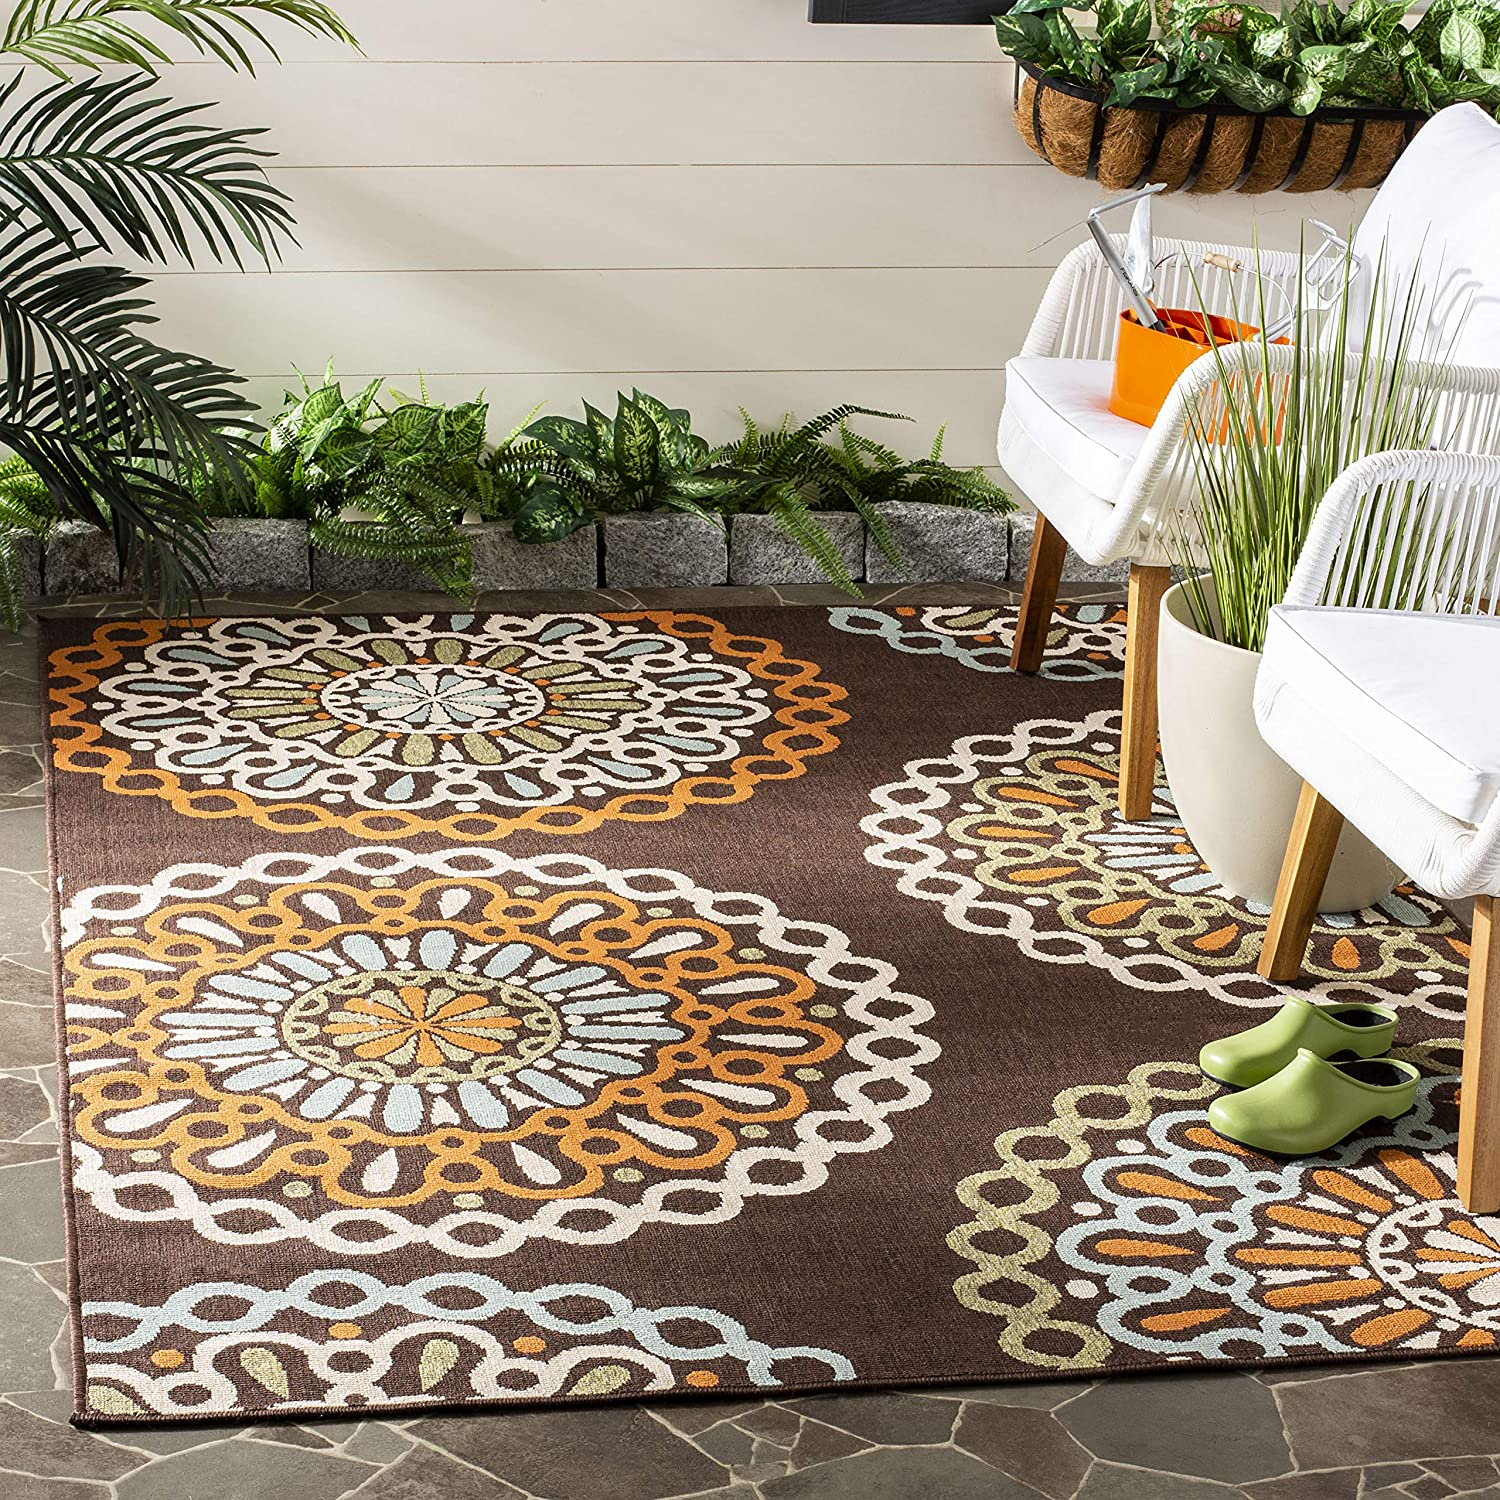 Area Rugs Home Kitchen Safavieh Veranda Collection Ver092 0625 Indoor Outdoor Chocolate And Blue Contemporary Runner 23 X 8